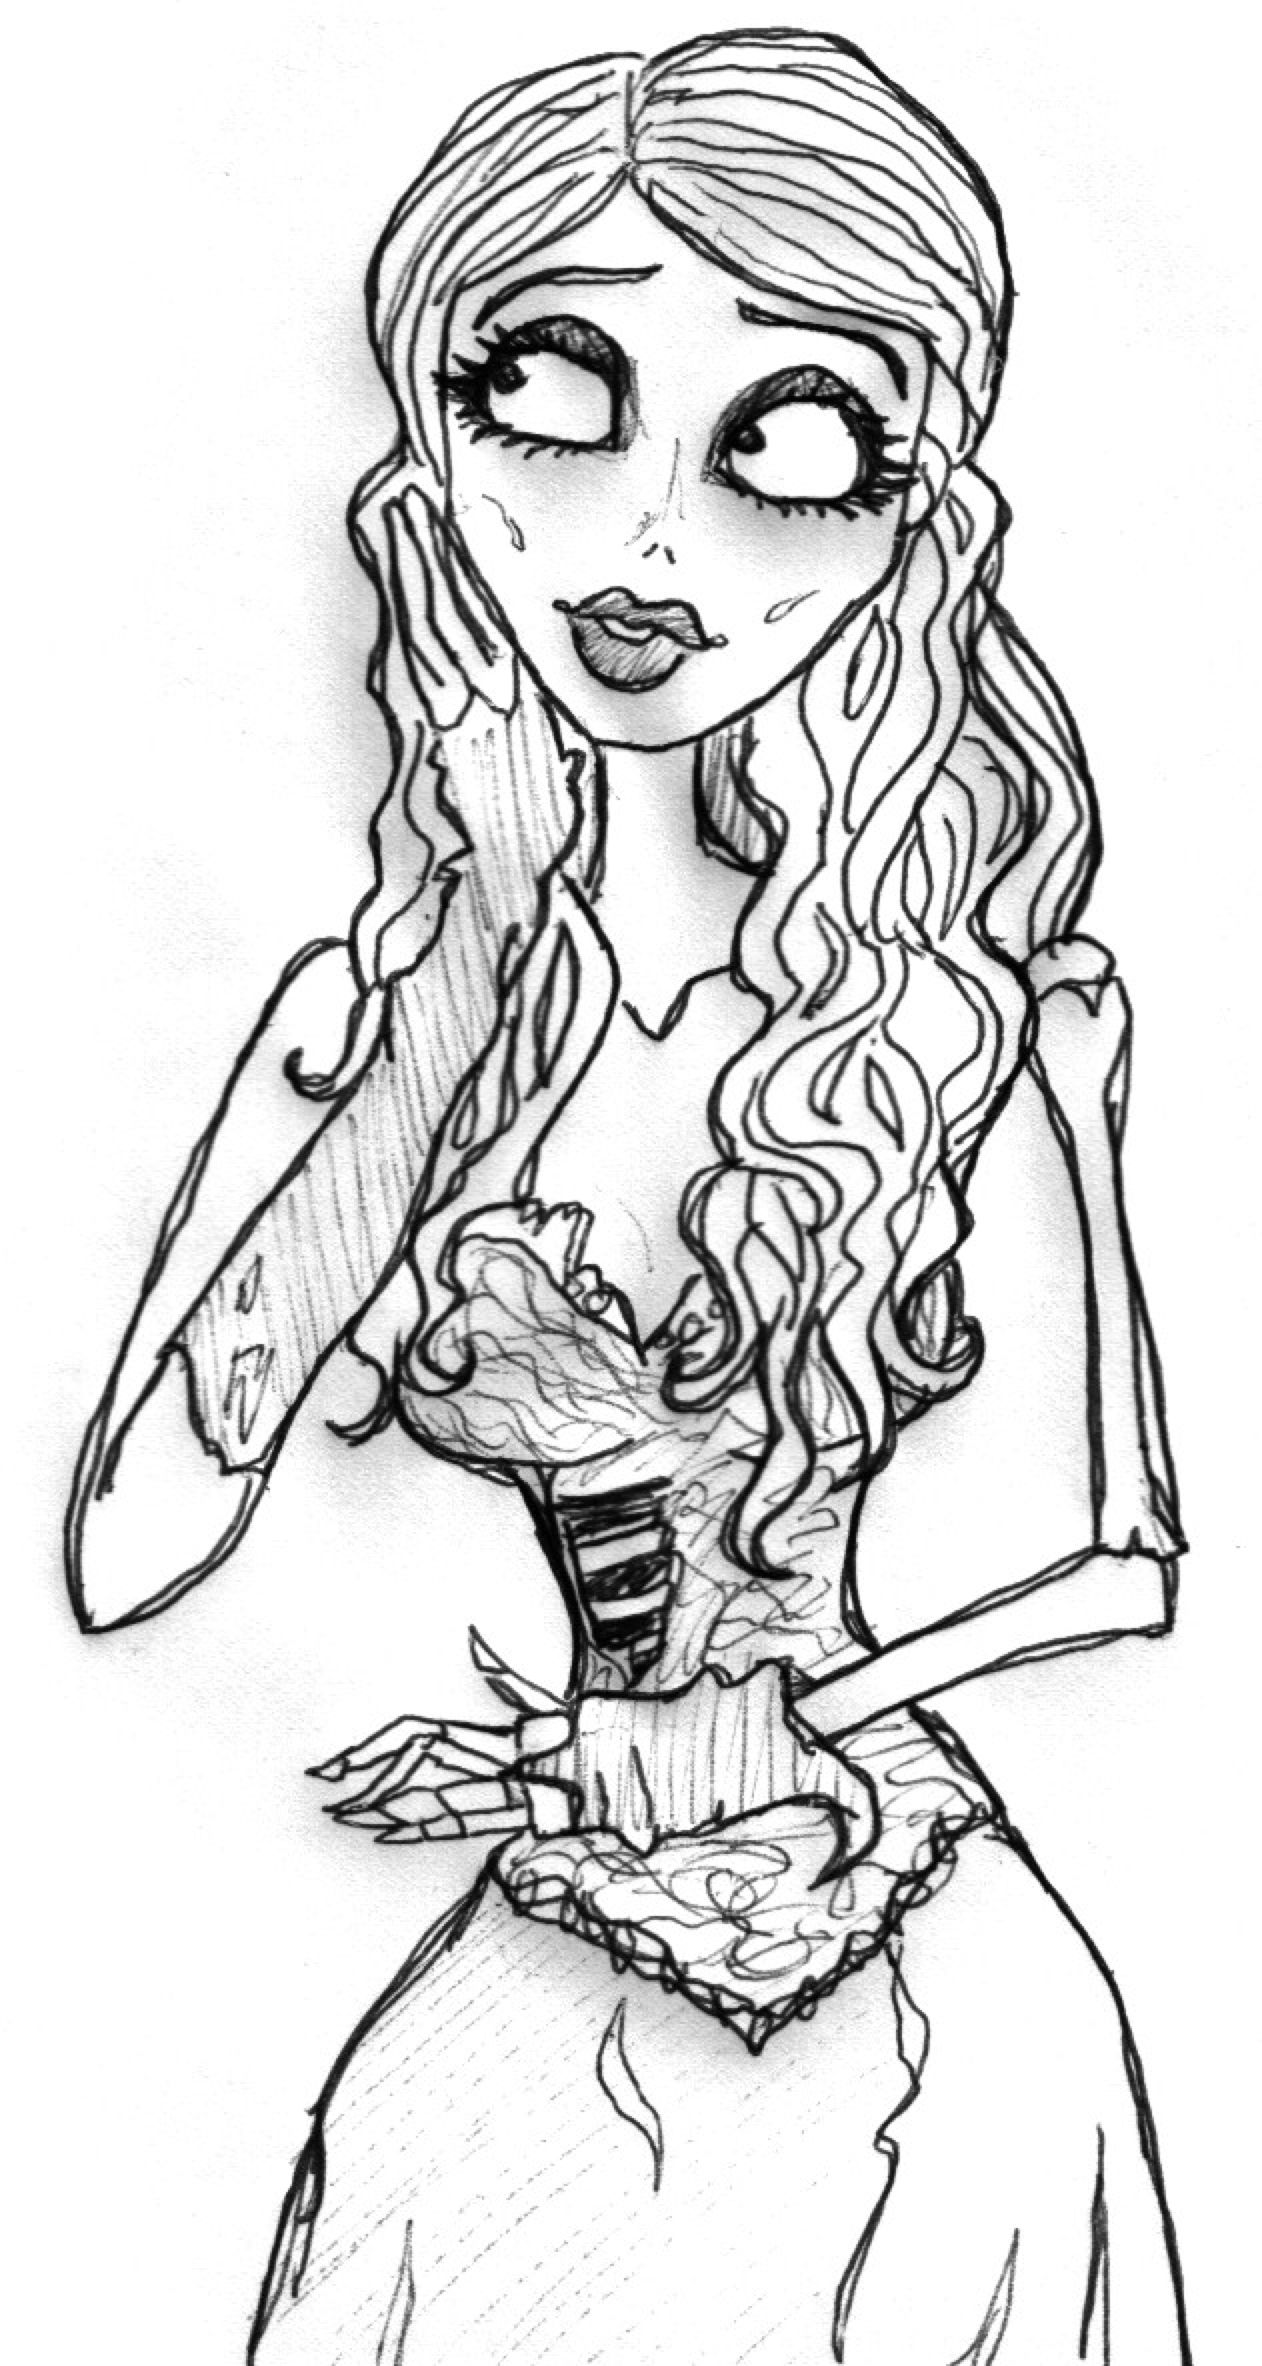 Corpse Bride Lineart by Kata-elf on DeviantArt | 2366x1262